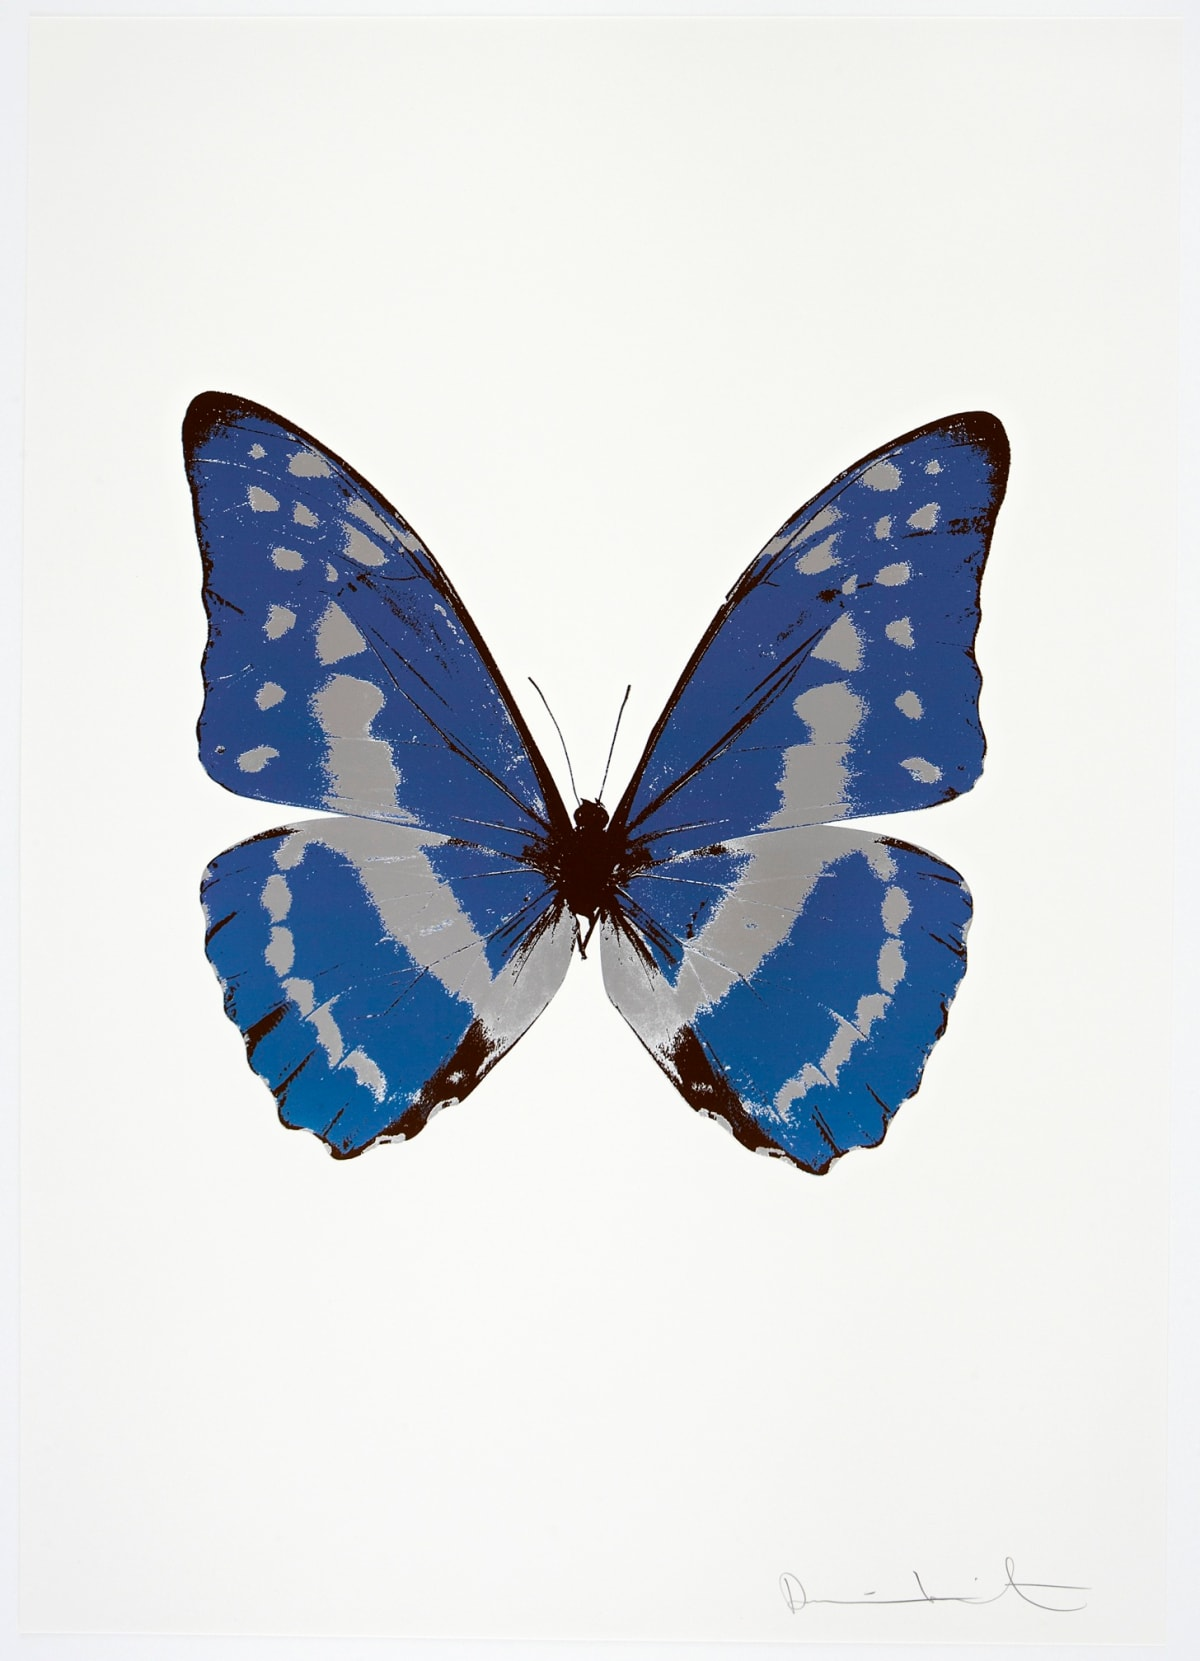 Damien Hirst The Souls III - Frost Blue/Silver Gloss/Chocolate, 2010 3 colour foil block on 300gsm Arches 88 archival paper. Signed and numbered. Published by Paul Stolper and Other Criteria 72 x 51cm OC7919 / 660-22 Edition of 15